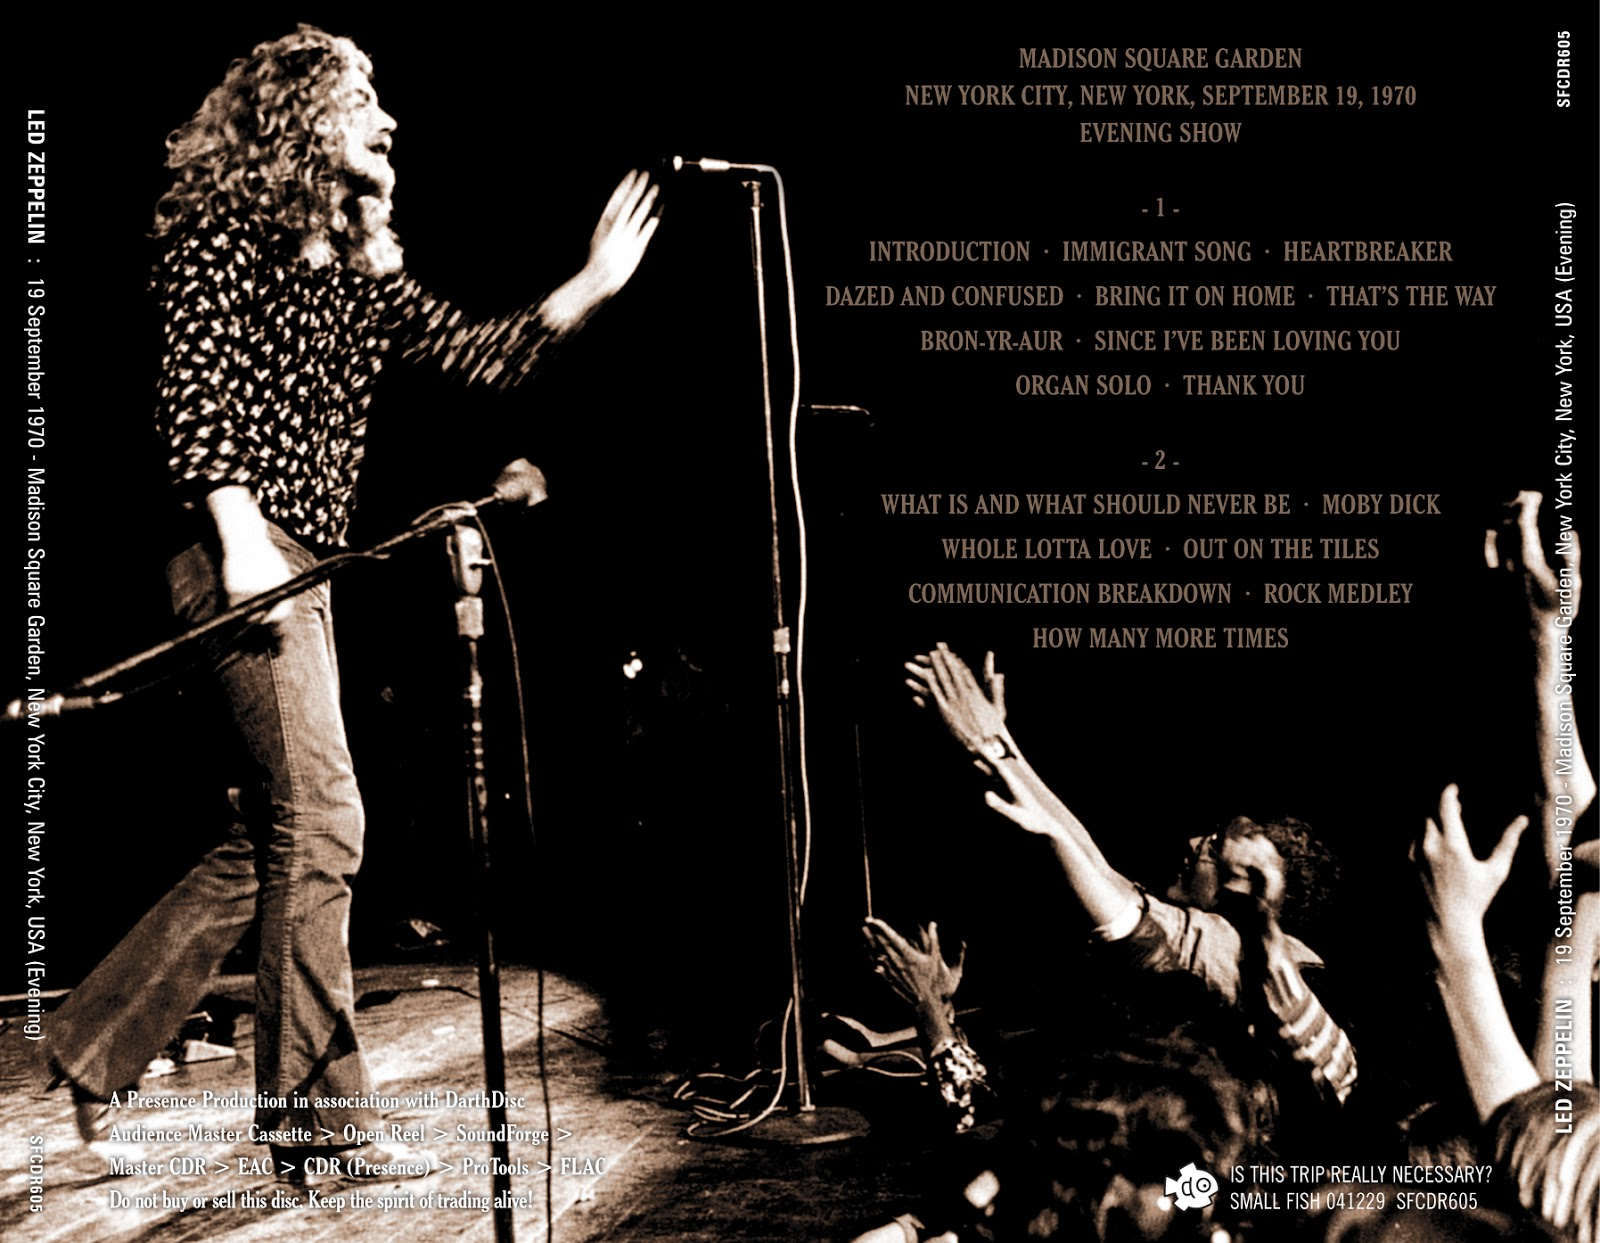 Long Live Led Zeppelin Led Zeppelin Madison Square Garden One More For The Road